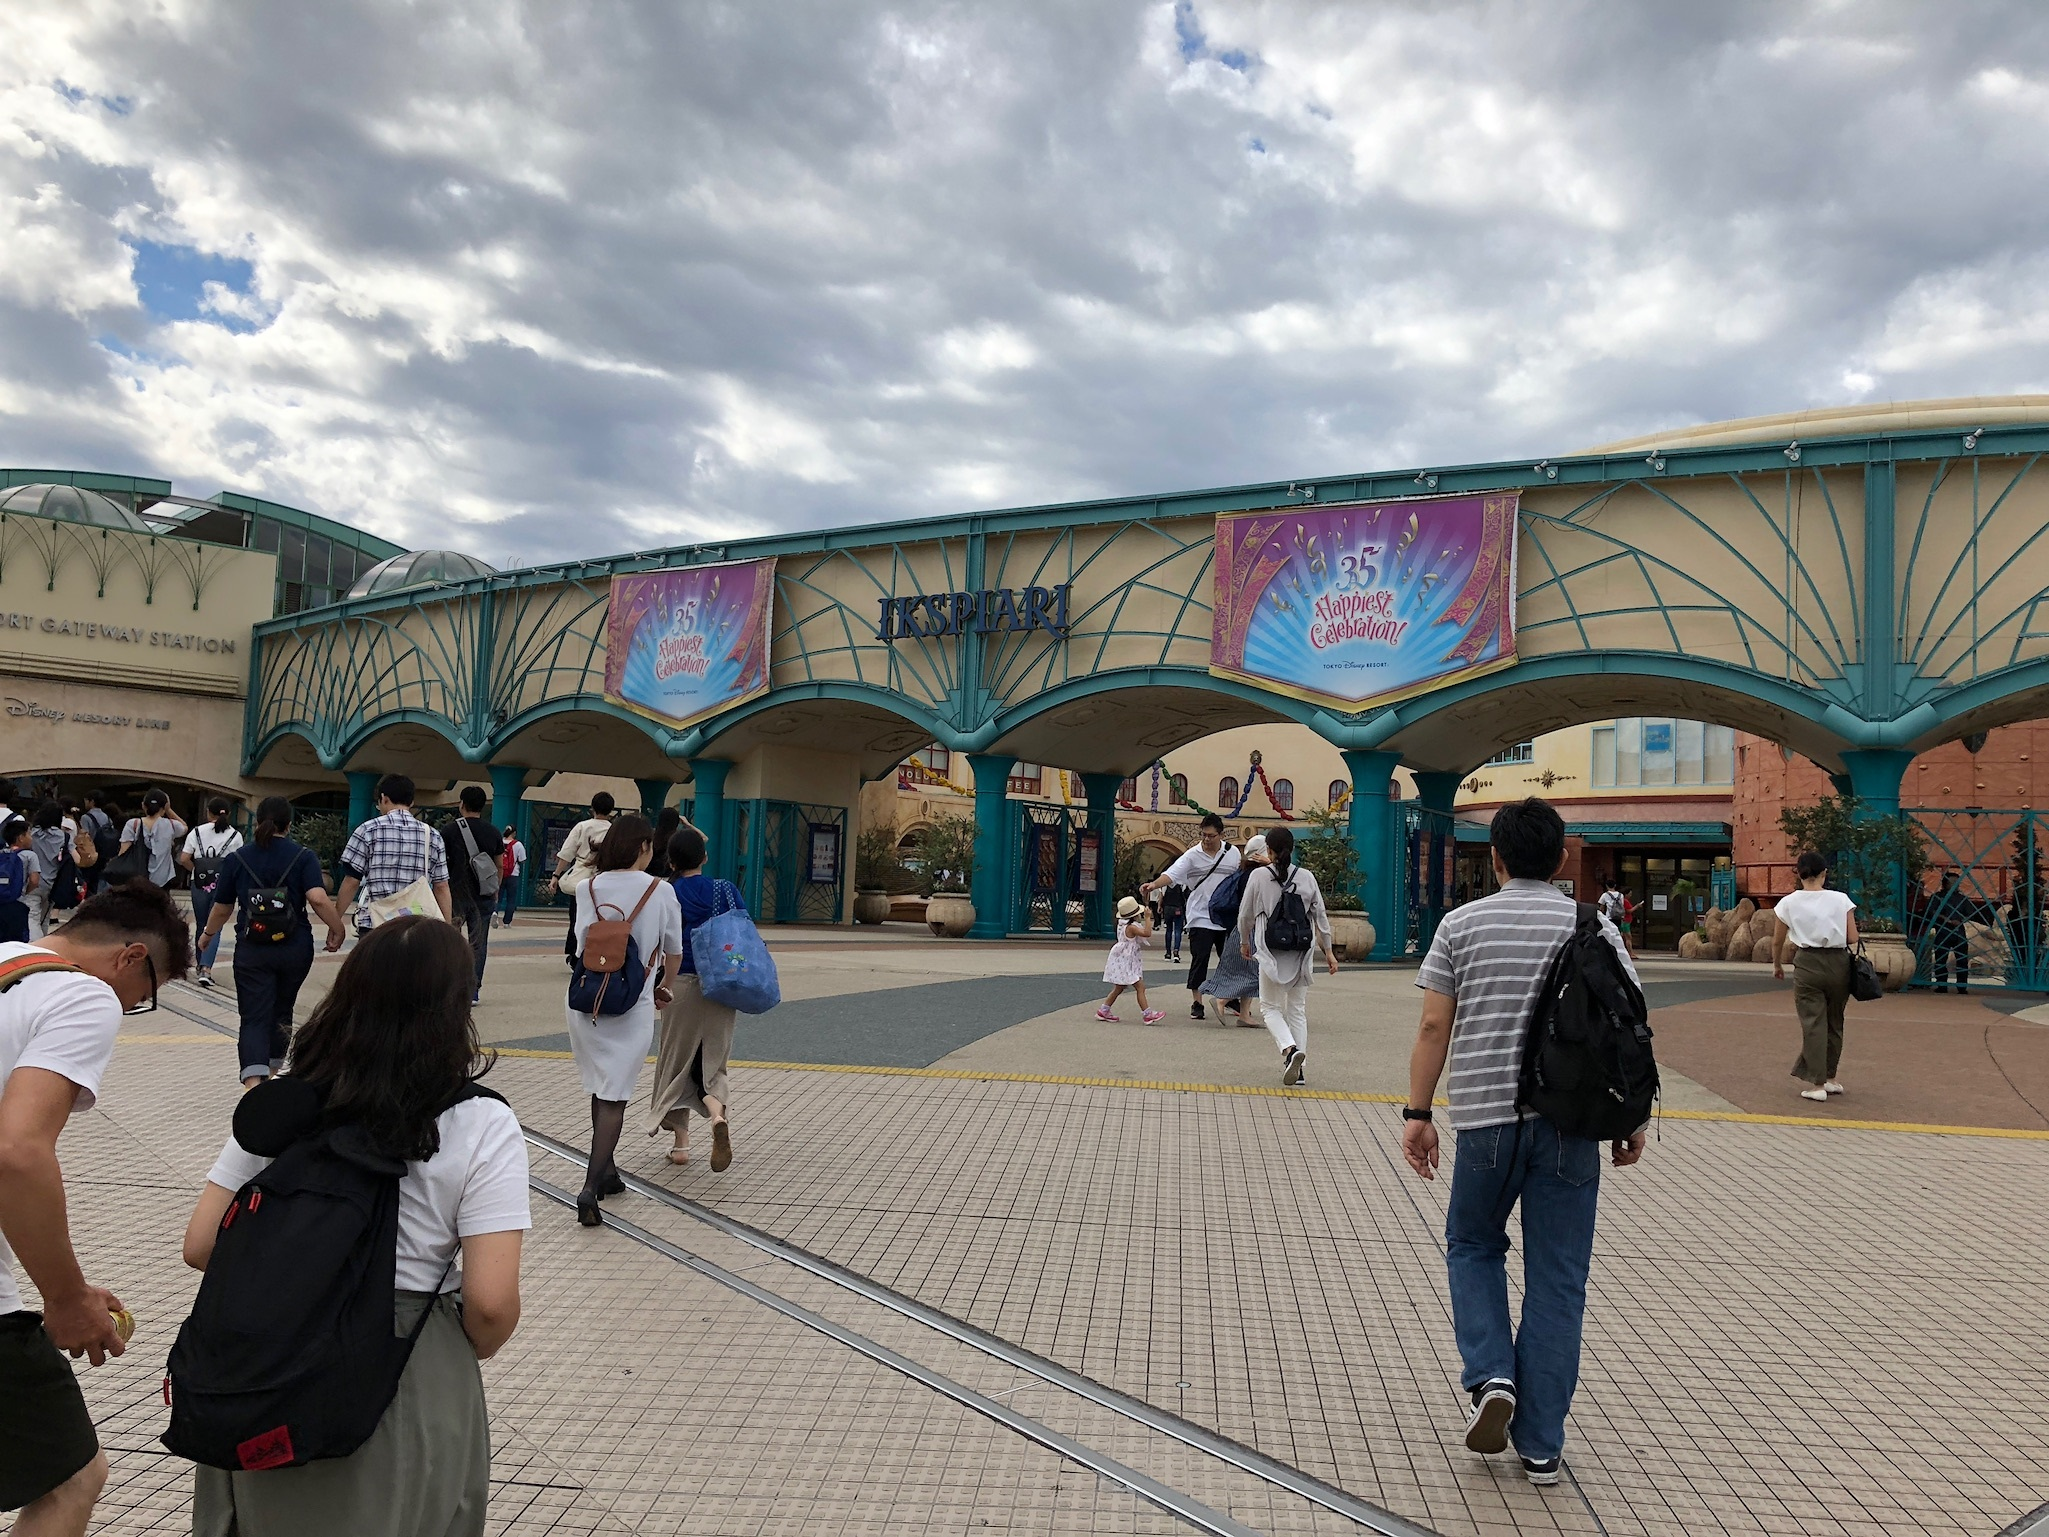 The area between the Maihama metro station and the Disney Gateway Station.